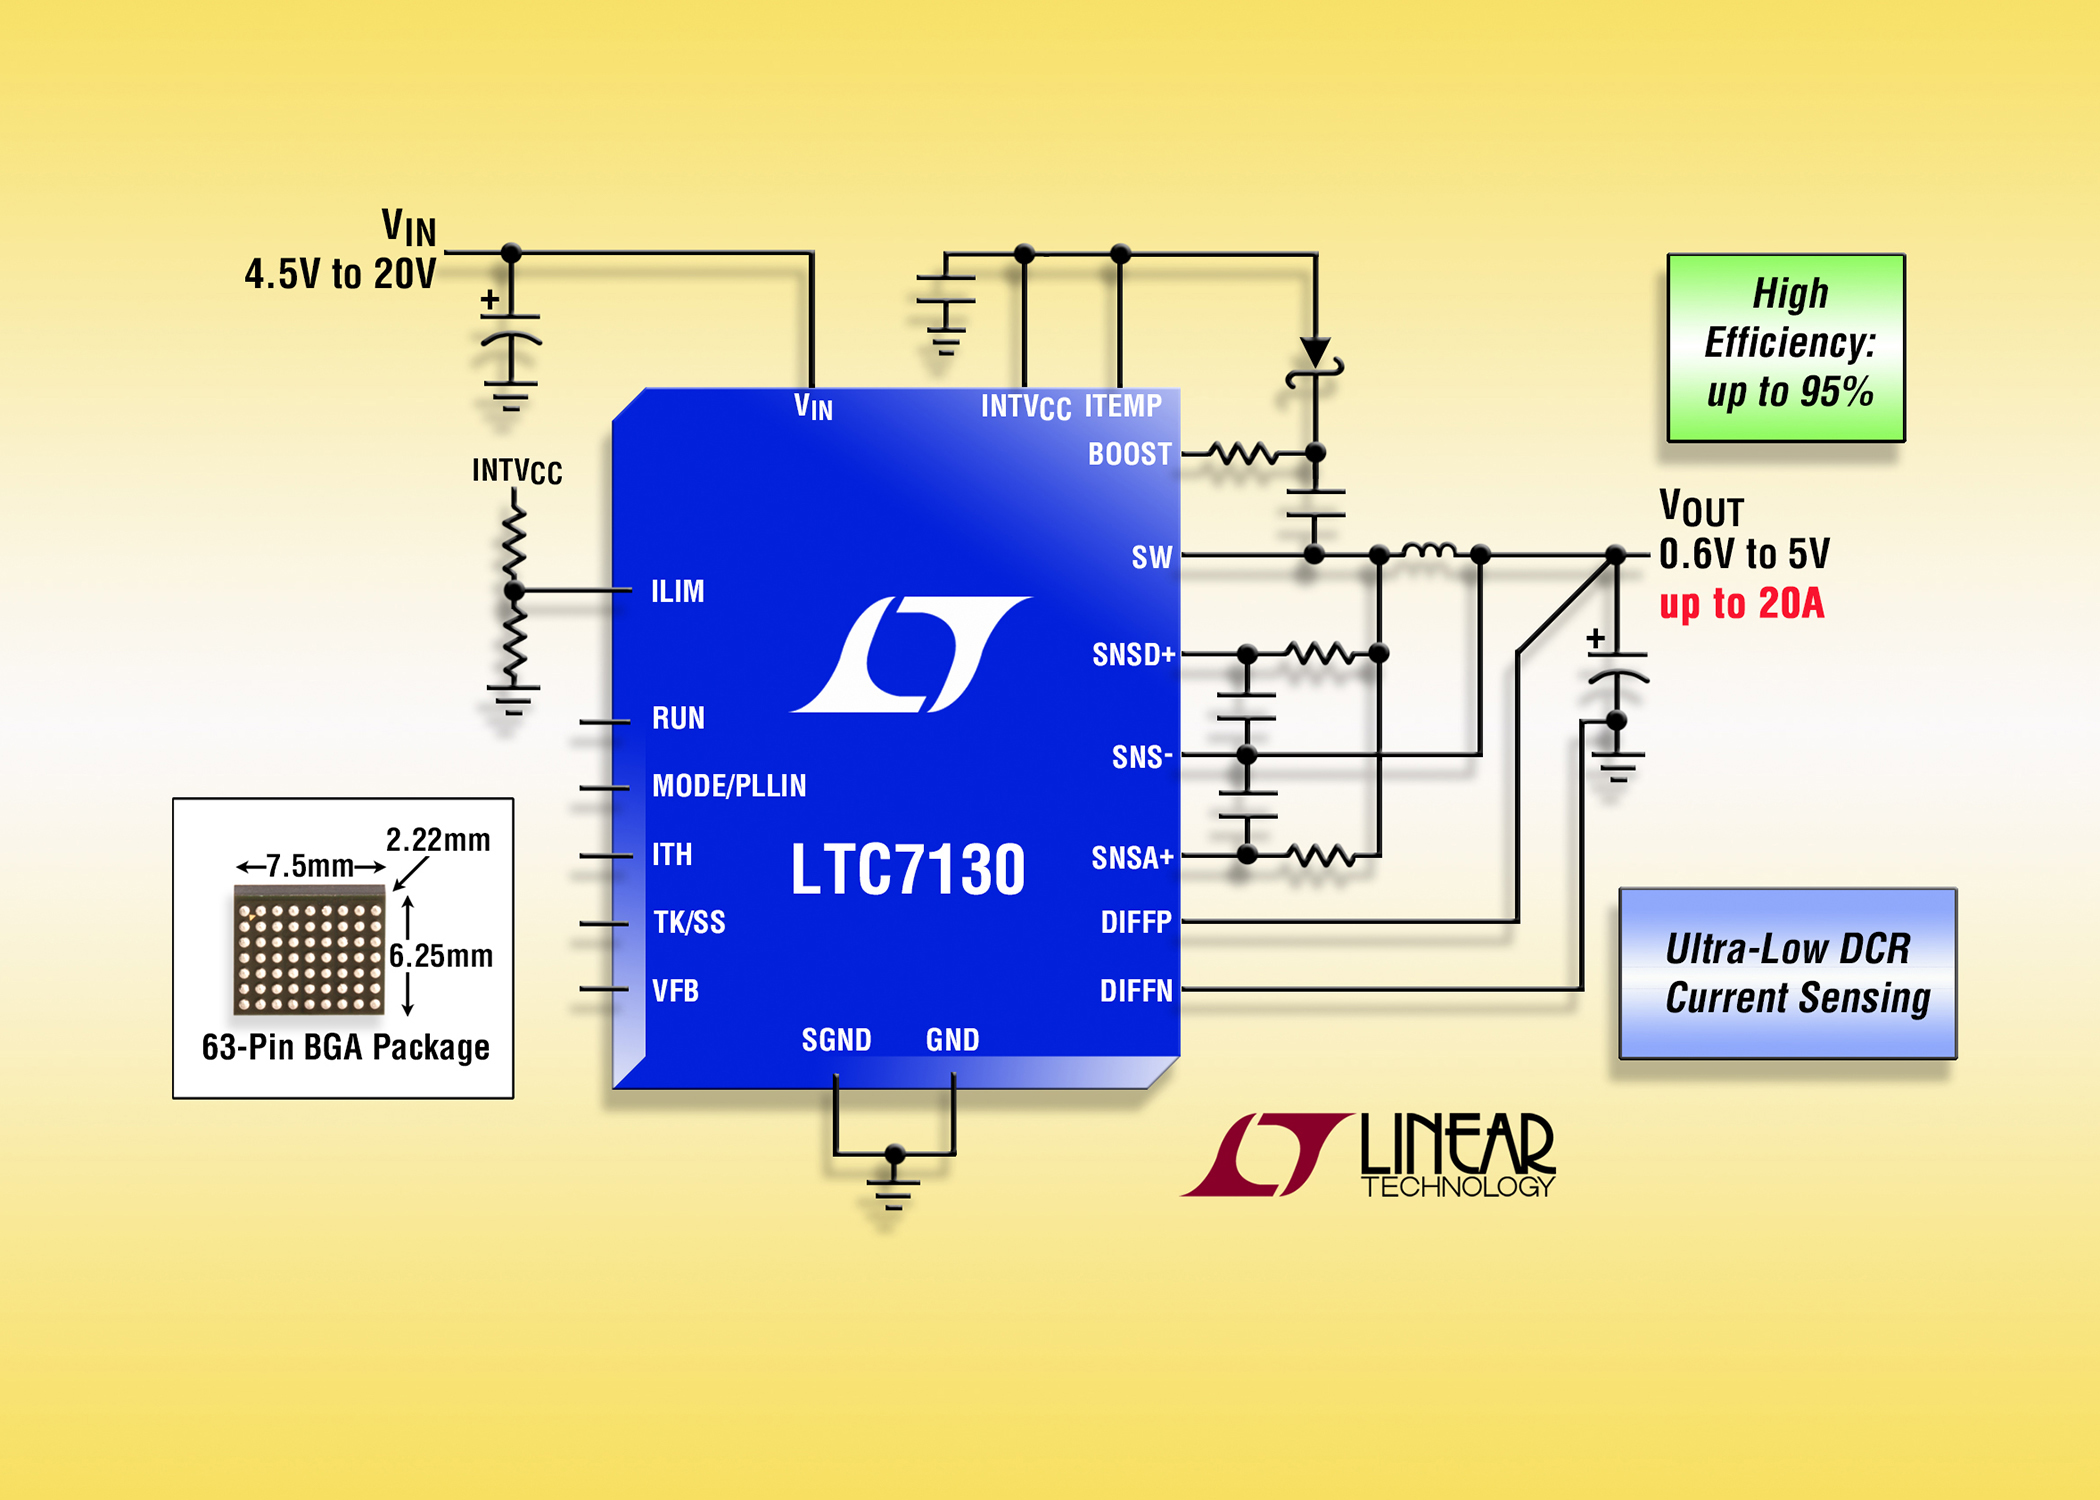 20v 20a Monolithic Synchronous Step Down Regulator With Ultra Low Currentsensorcircuit1jpg Dcr Current Sensing For Higher Efficiency The Engineer